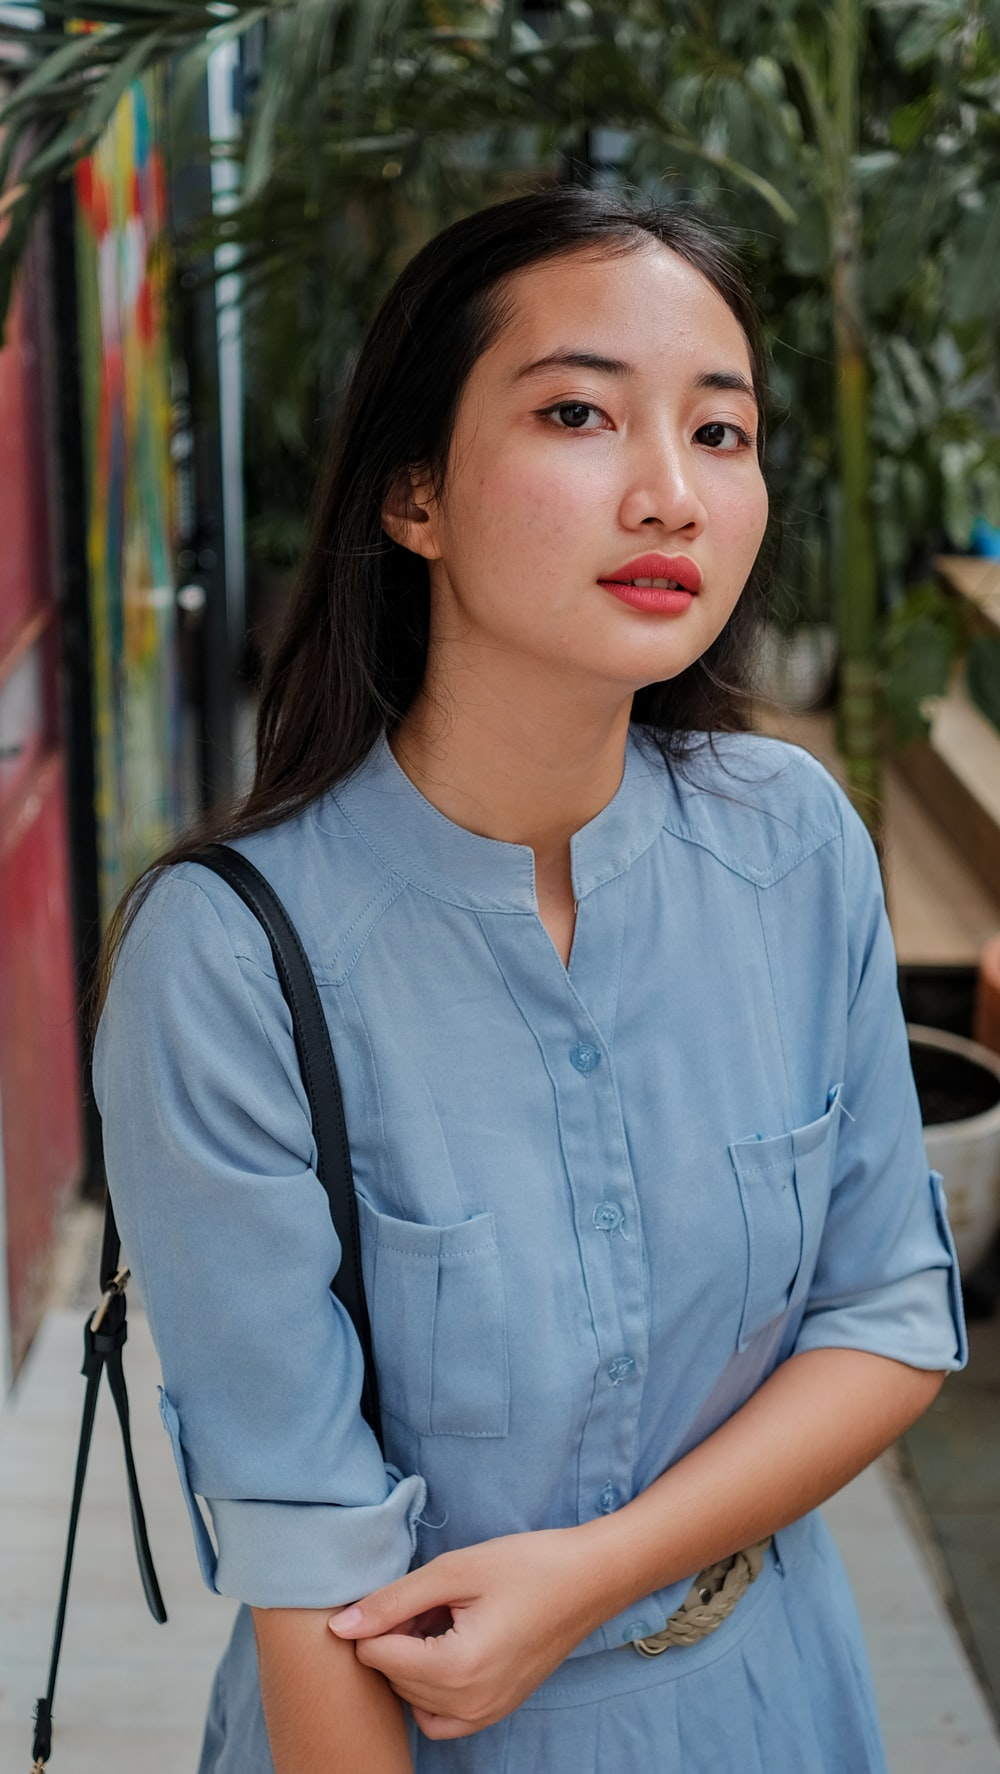 woman in blue button up shirt